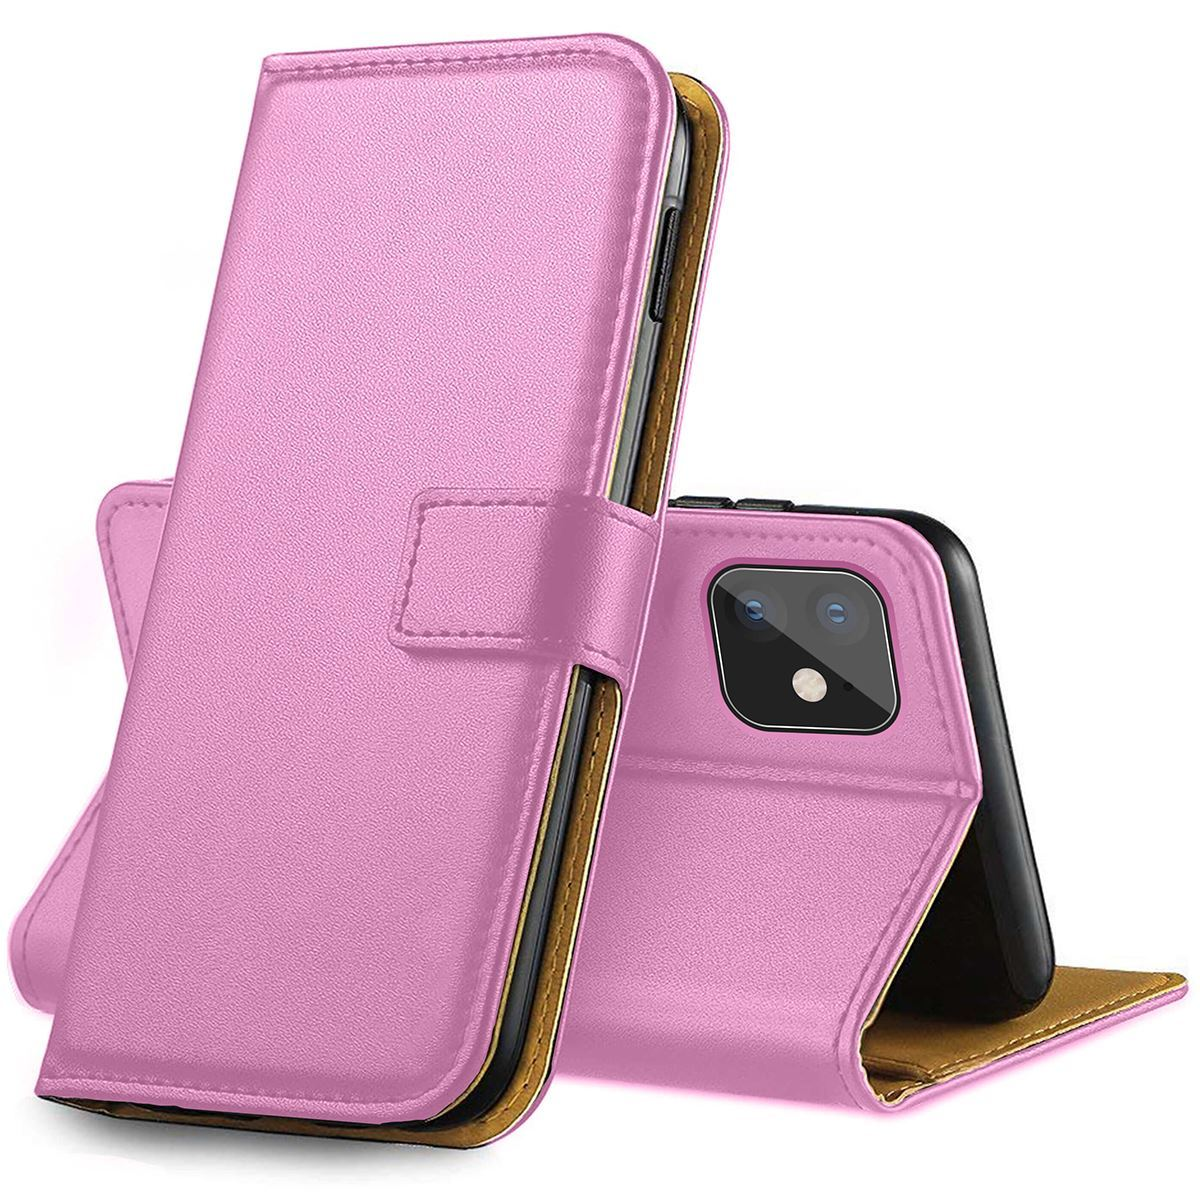 IPHONE 12 6.1 PU LEATHER WALLET CASE – PINK